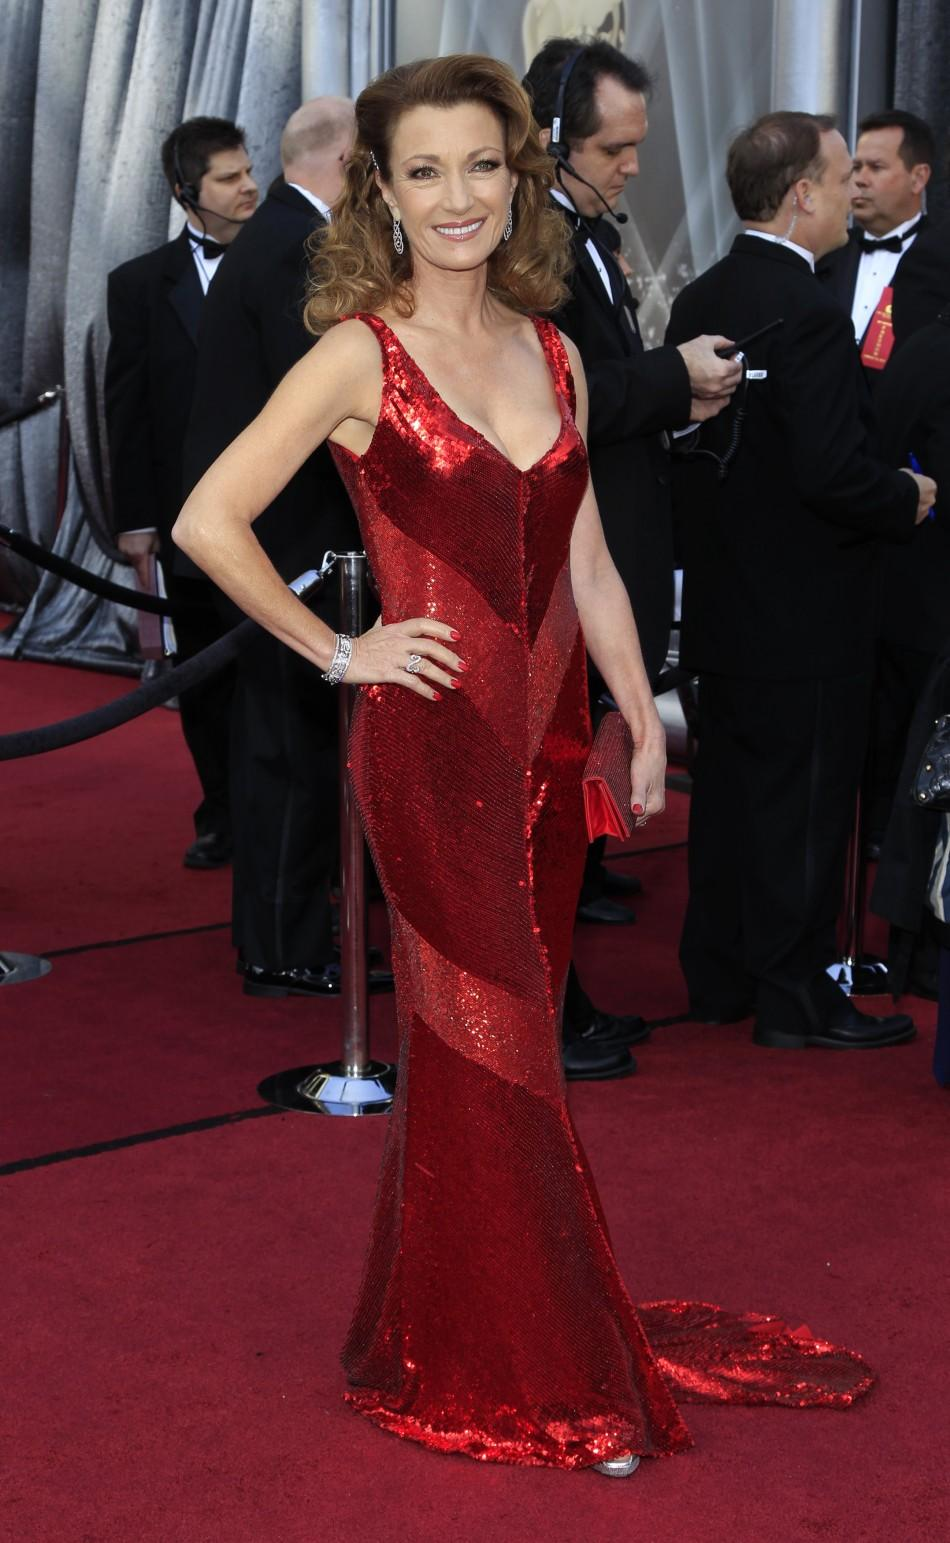 Actress Jane Seymour arrives at the 84th Academy Awards in Hollywood, California February 26, 2012.